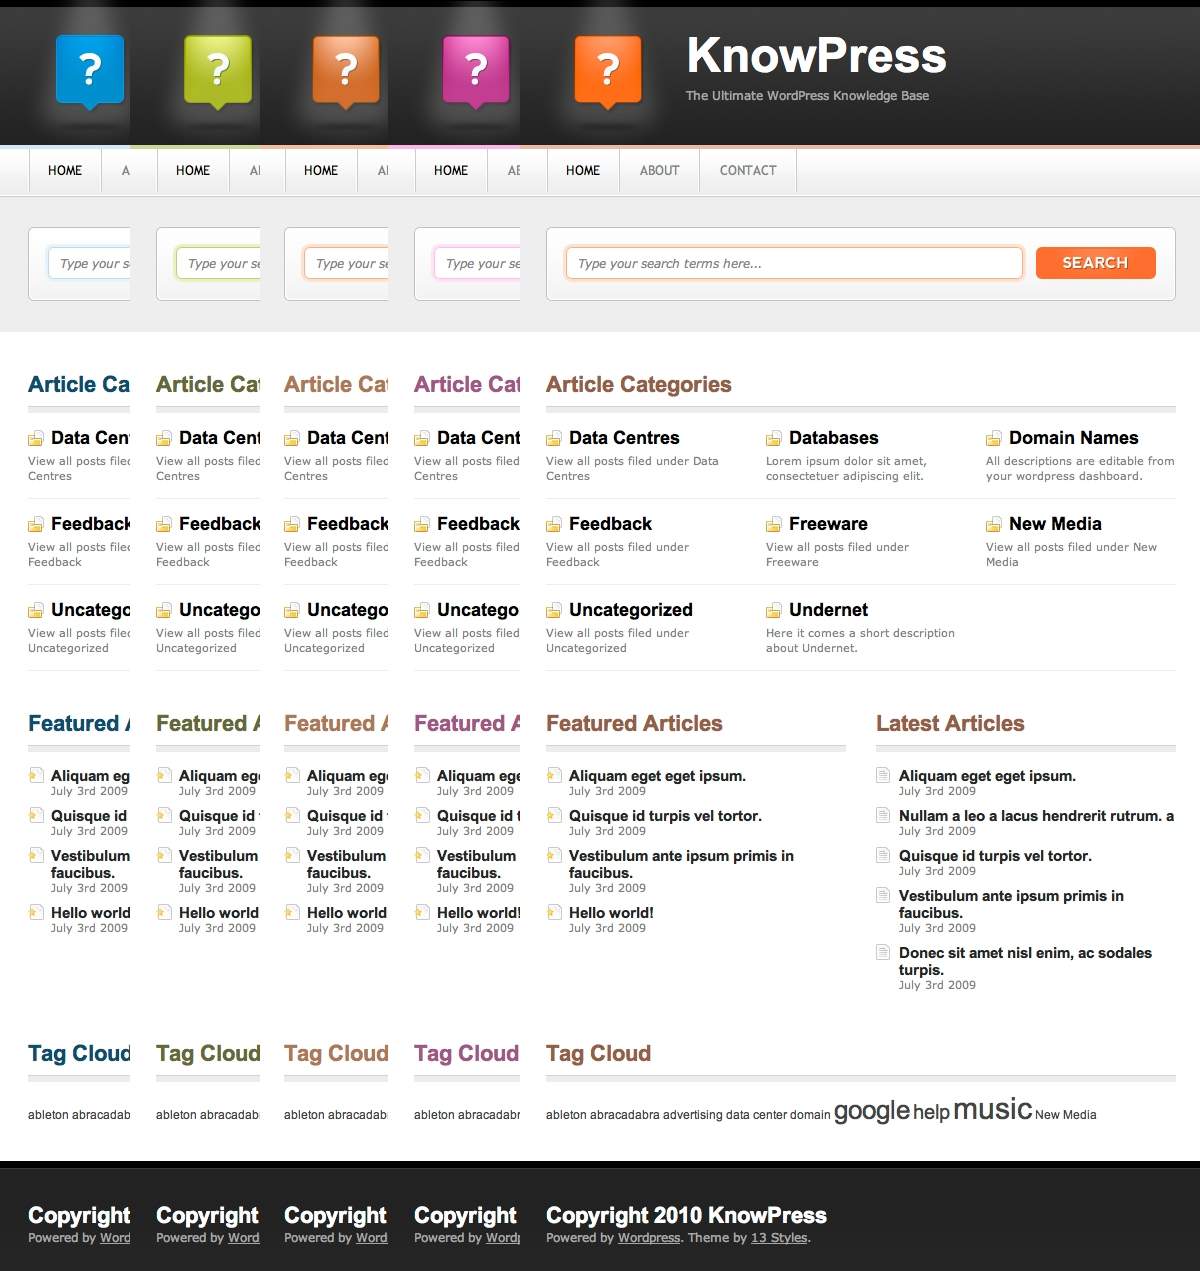 KnowPress Knowledge Base/Wiki for WordPress - Showing the five gorgeous colour schemes available with the theme.